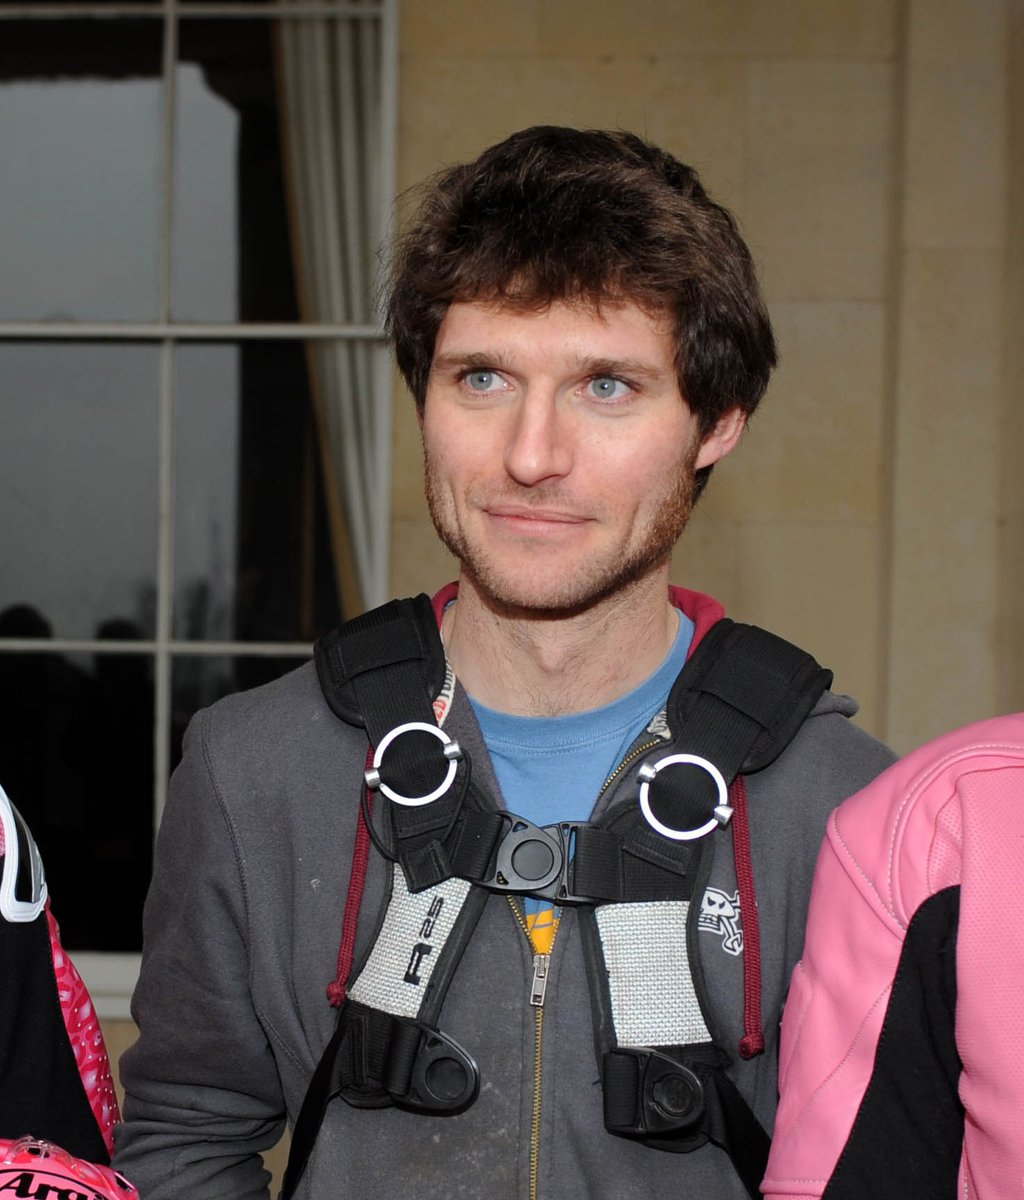 Happy to announce that famous lorry mechanic, road racer & TV presenter Guy Martin will be joining us at #ASI16 https://t.co/1Tmi2OpydQ